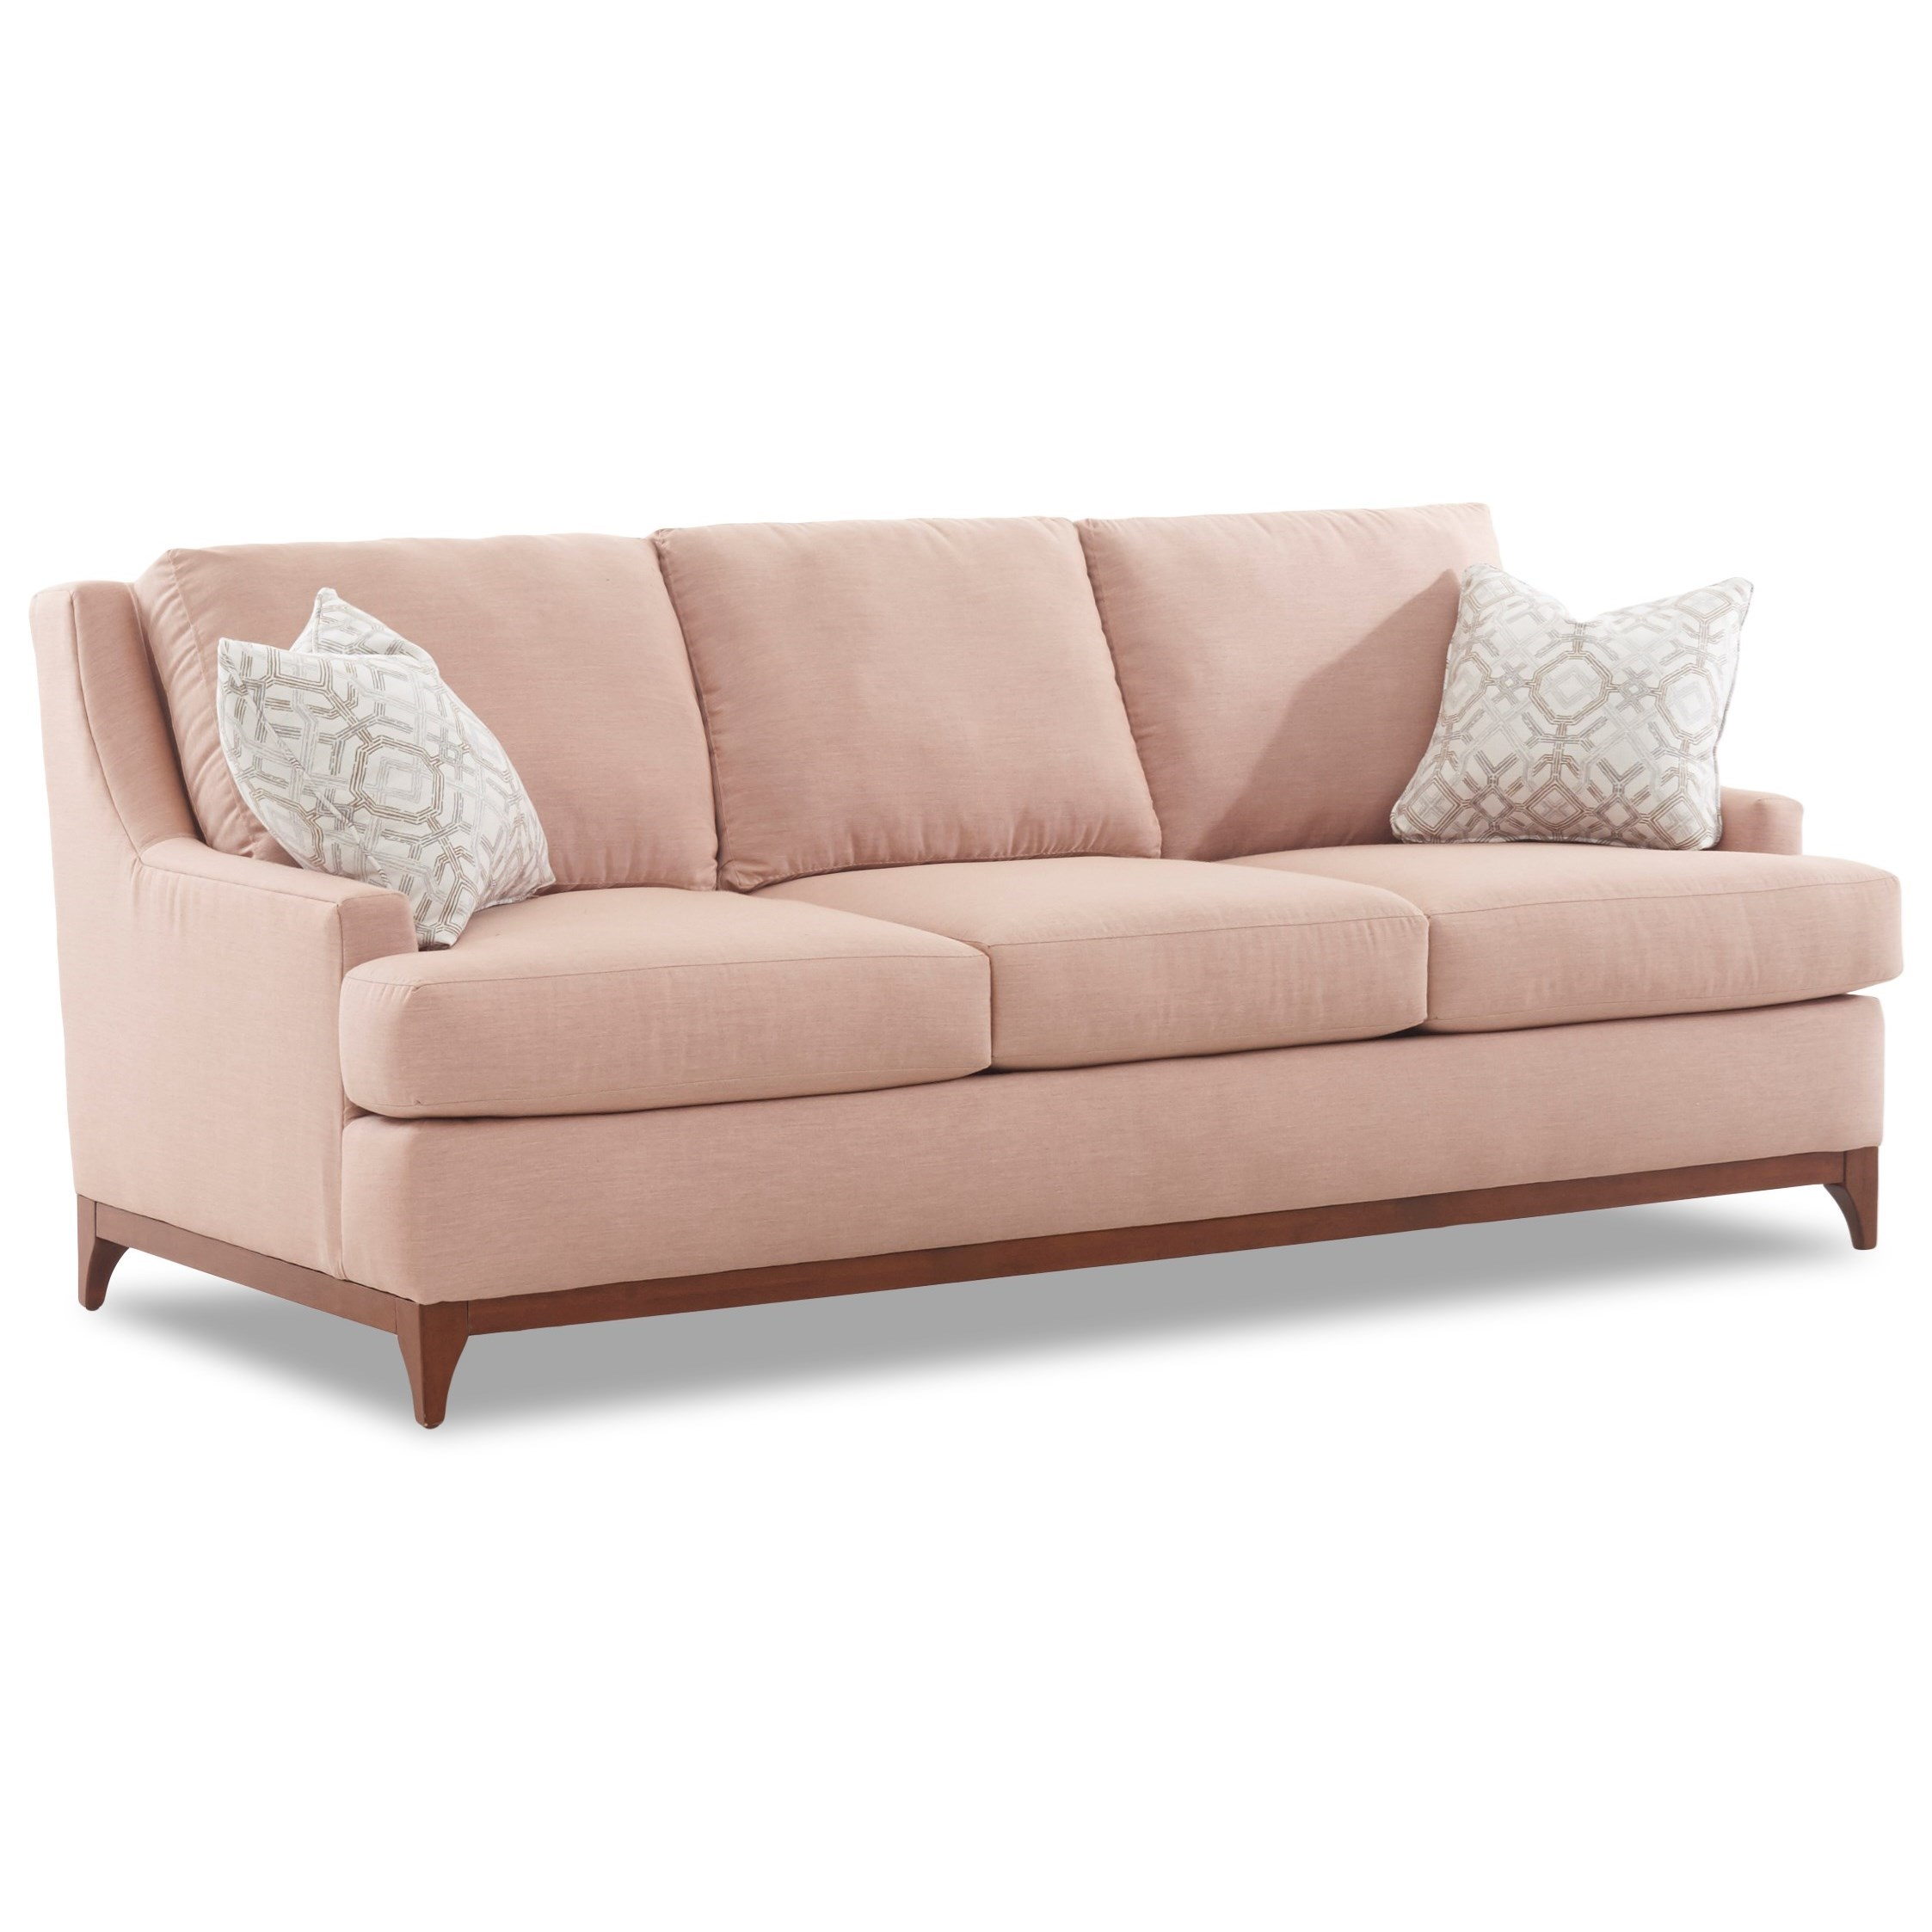 Contemporary Couch Luca Contemporary Sofa With Wood Base By Klaussner At Suburban Furniture